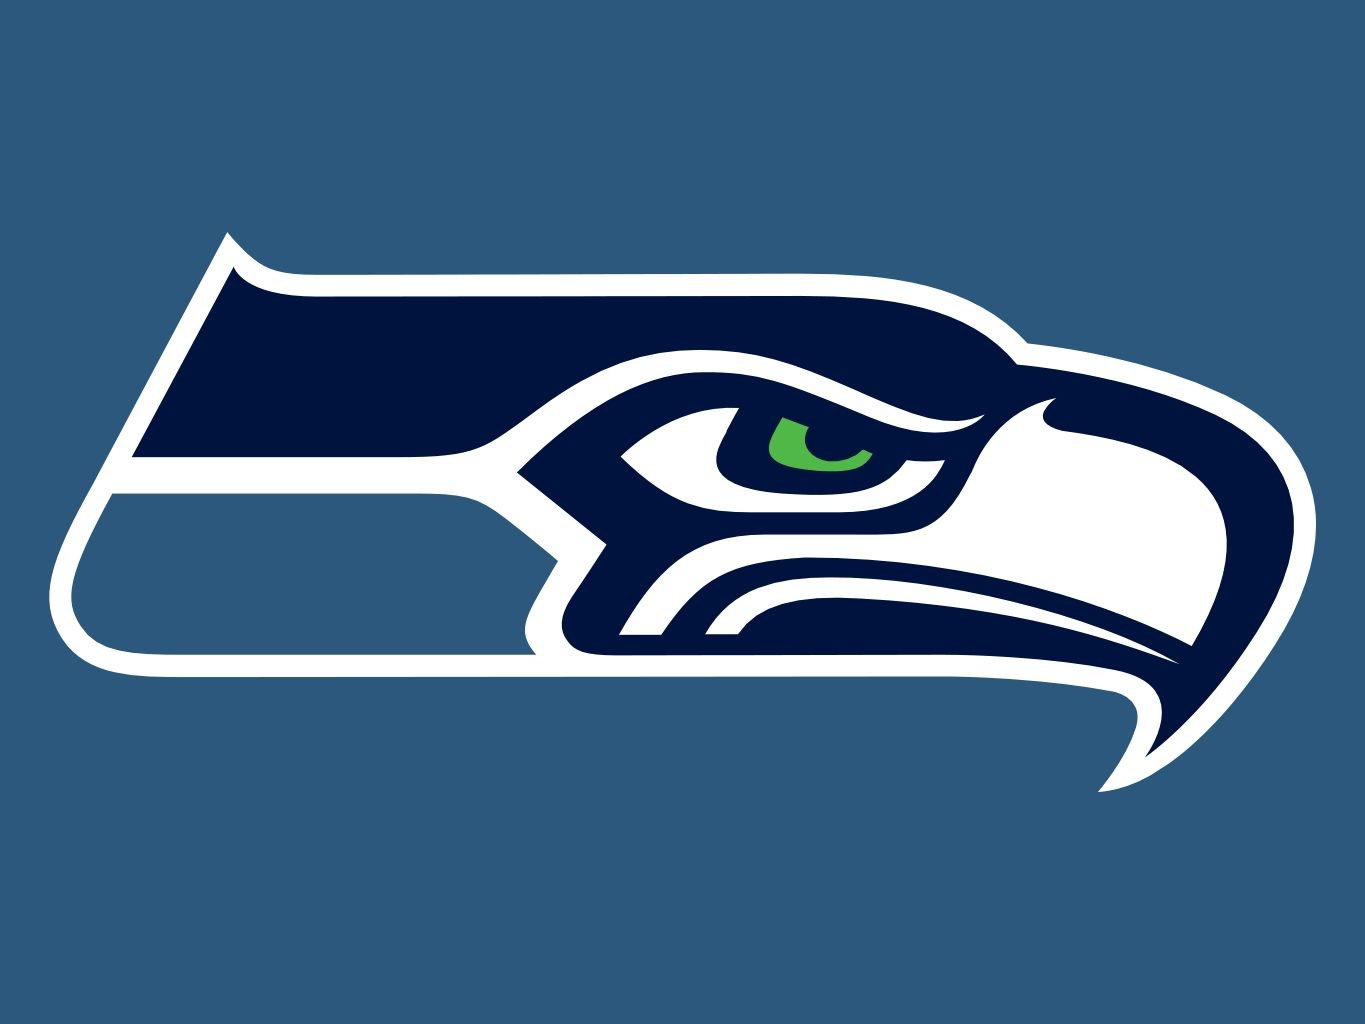 Seattle Seahawks #NFL for Novice | Halcones marinos de seattle ...